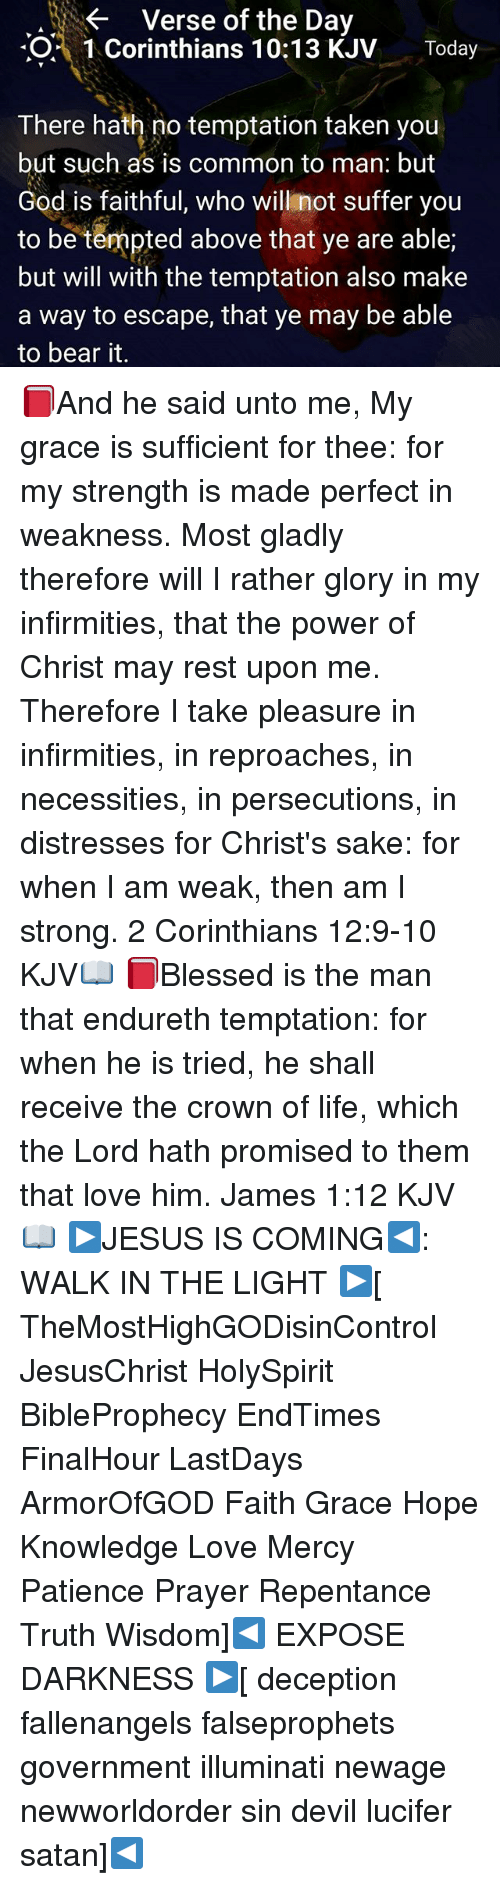 verse of the day o 1 corinthians 1013 kjv today there hath no